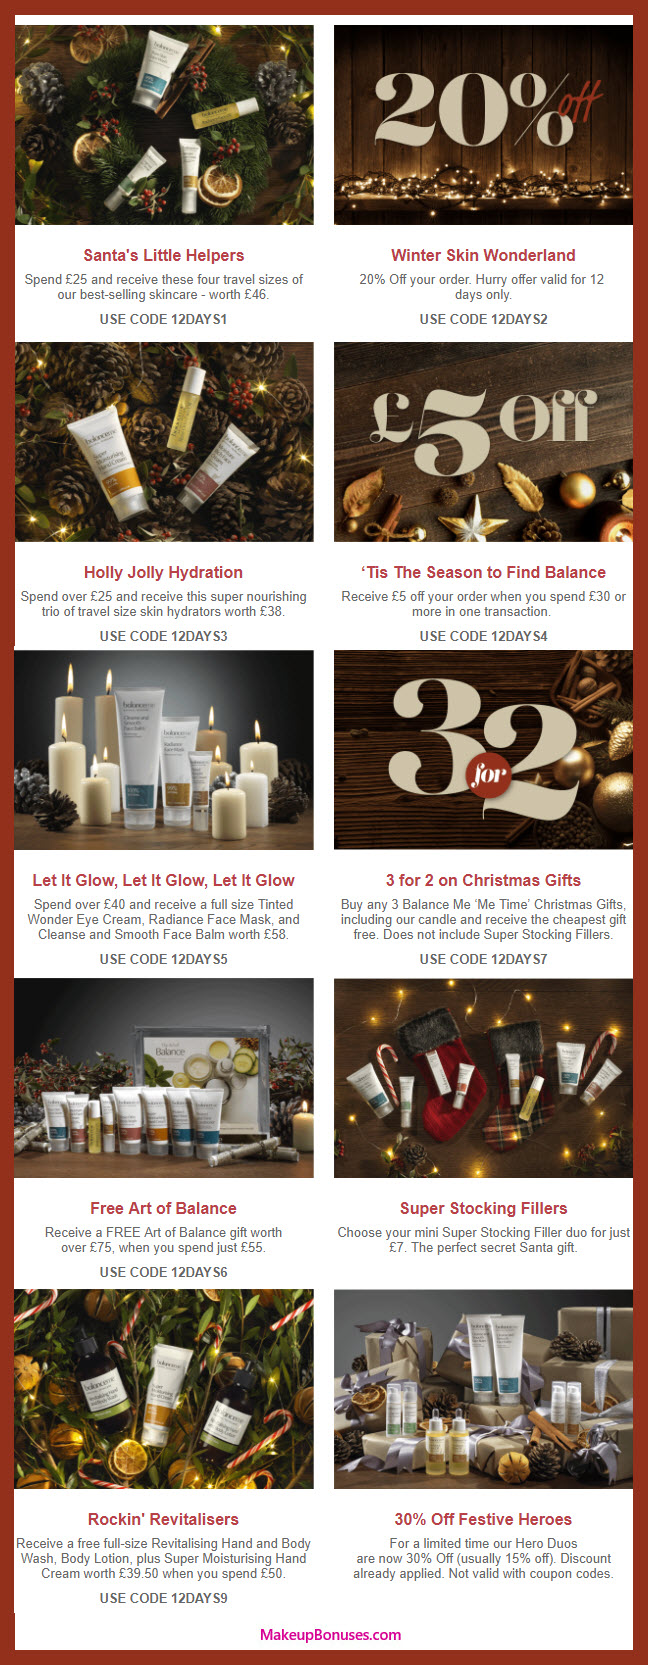 Receive a free 4-pc gift with your purchase